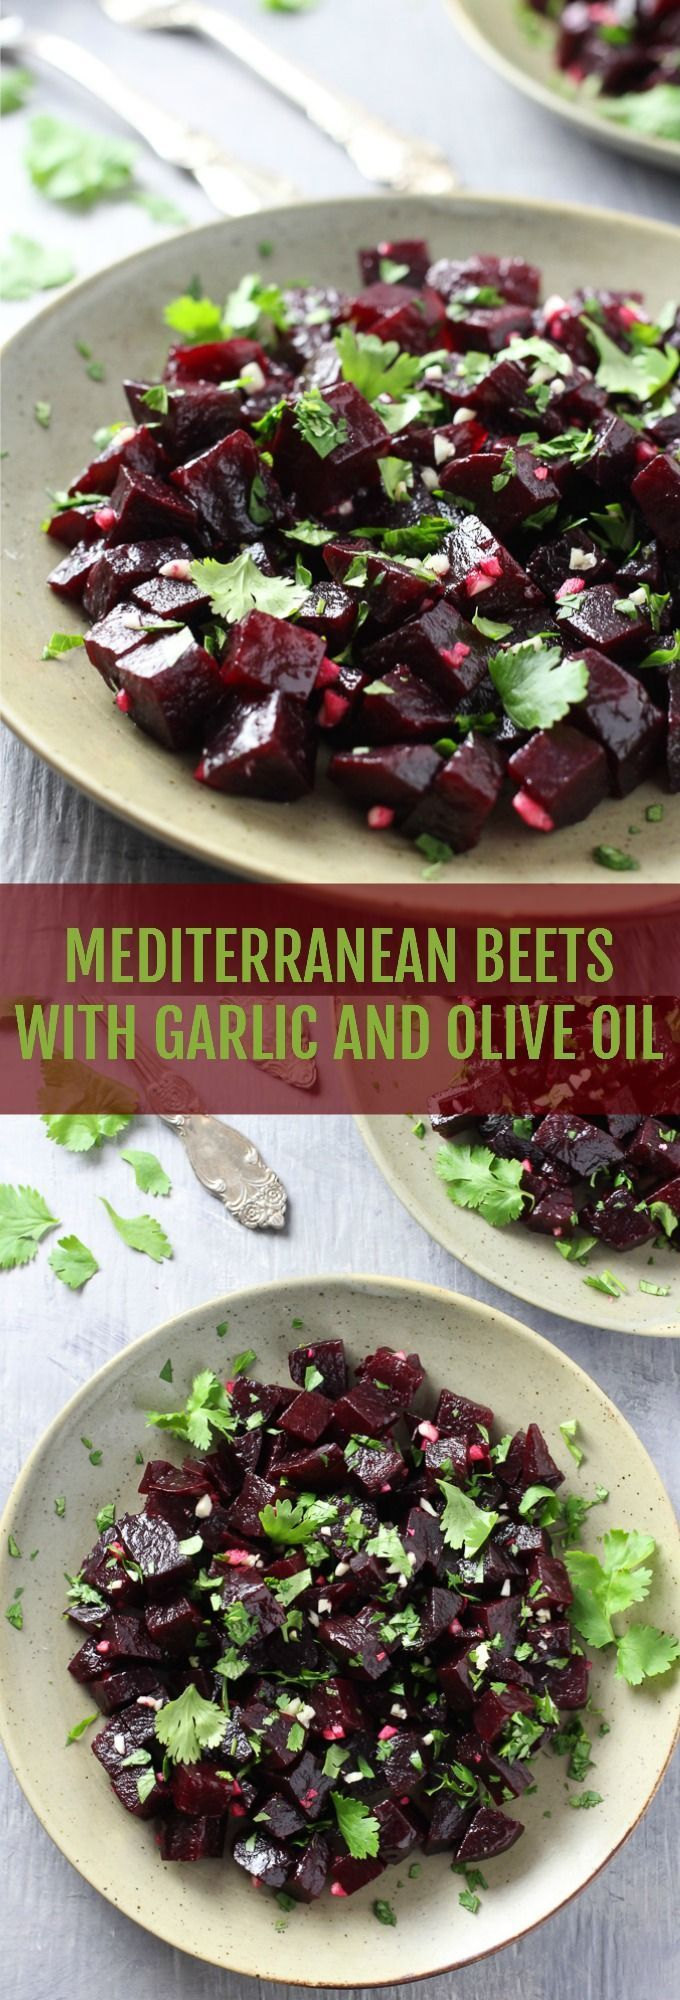 Mediterranean Beets with Garlic and Olive Oil Recipe - really easy to make, full of flavor and very healthy. Serve as a salad or side dish.